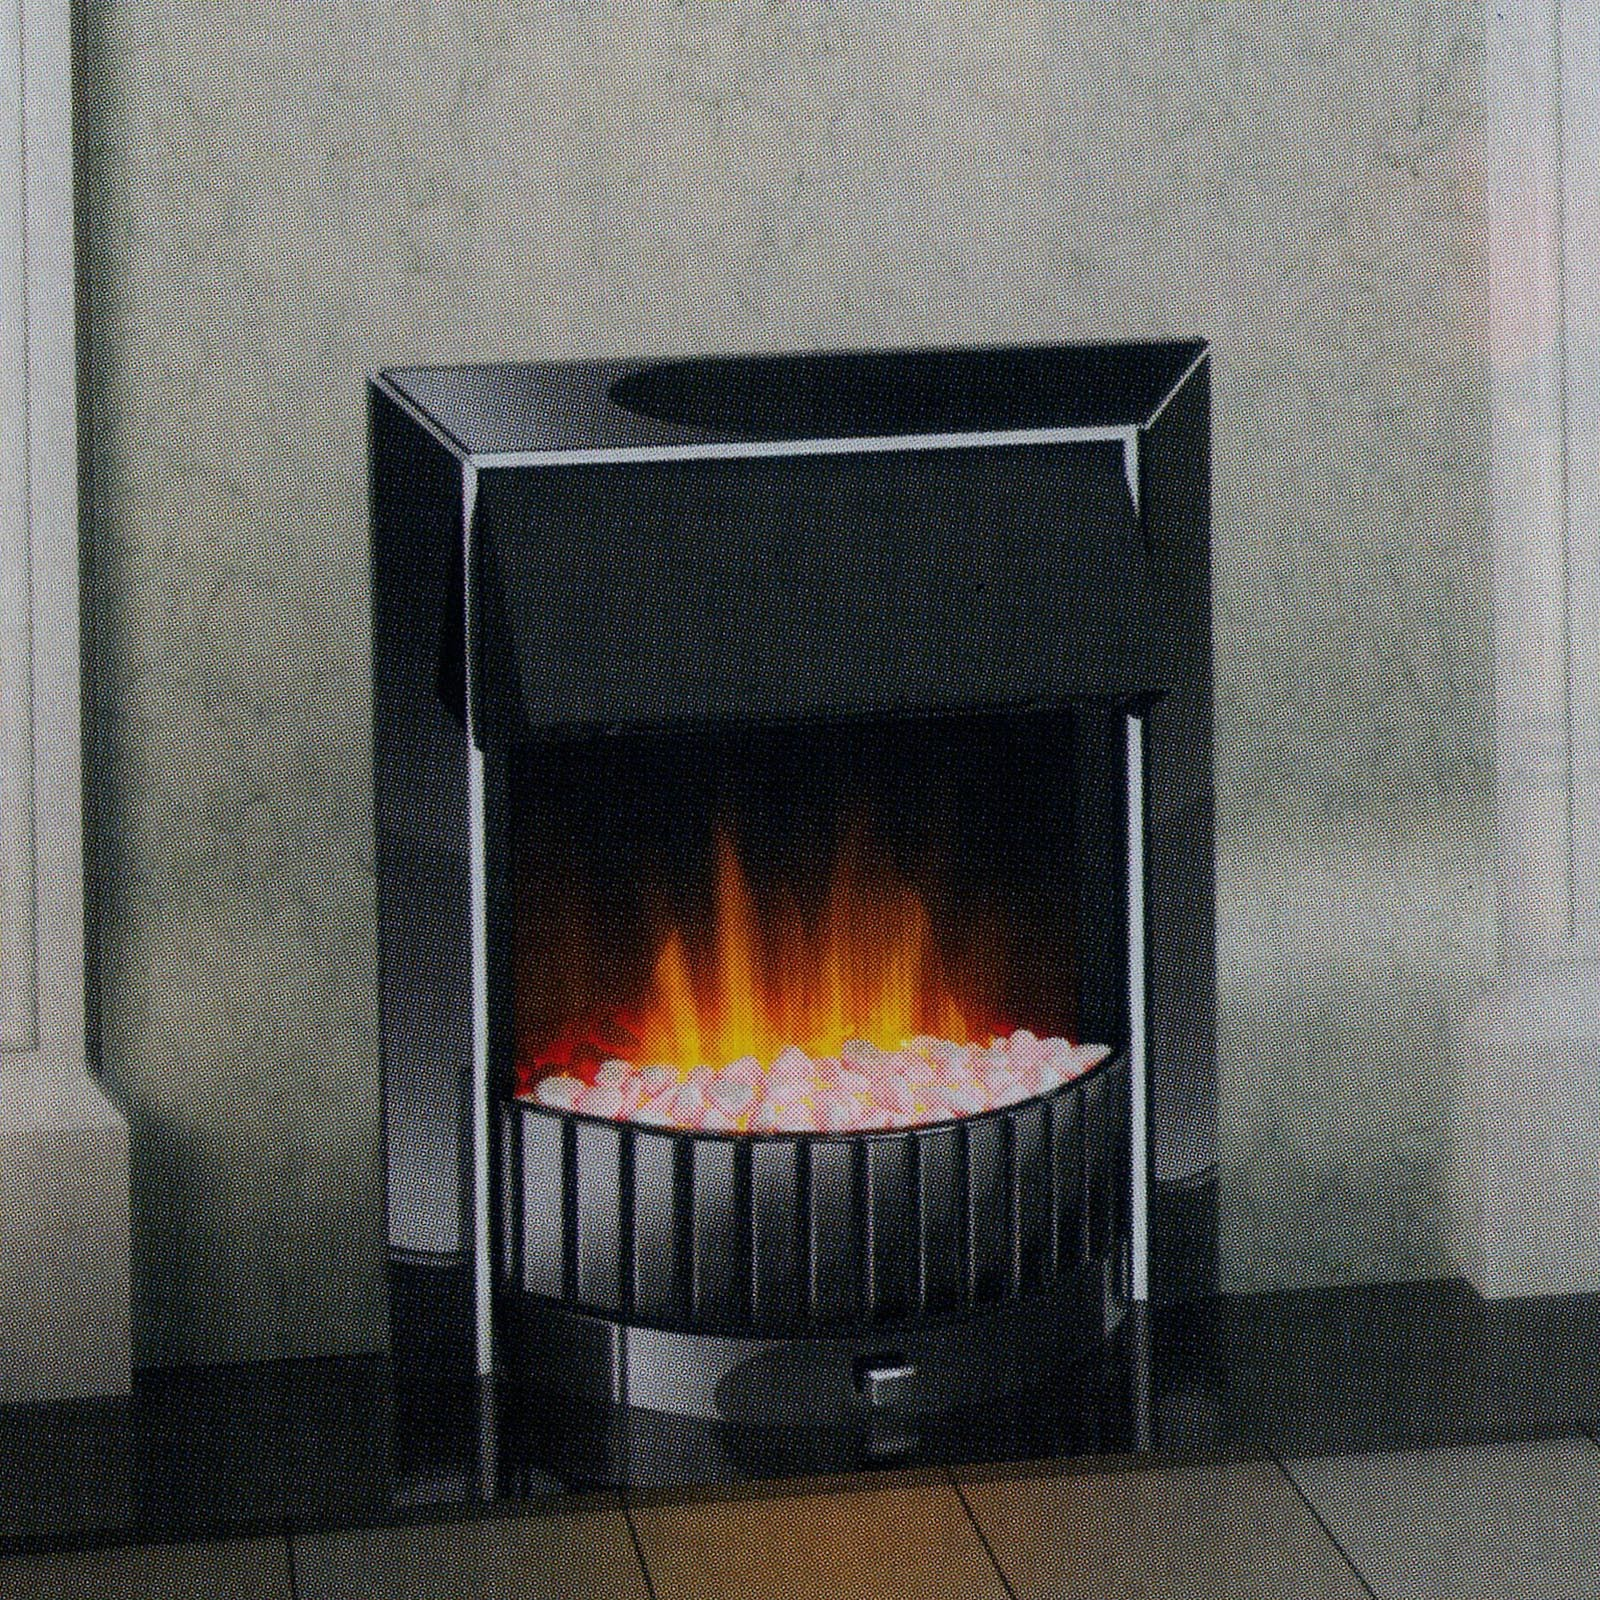 bargin prices dimplex delius black nickel optiflame electric fire